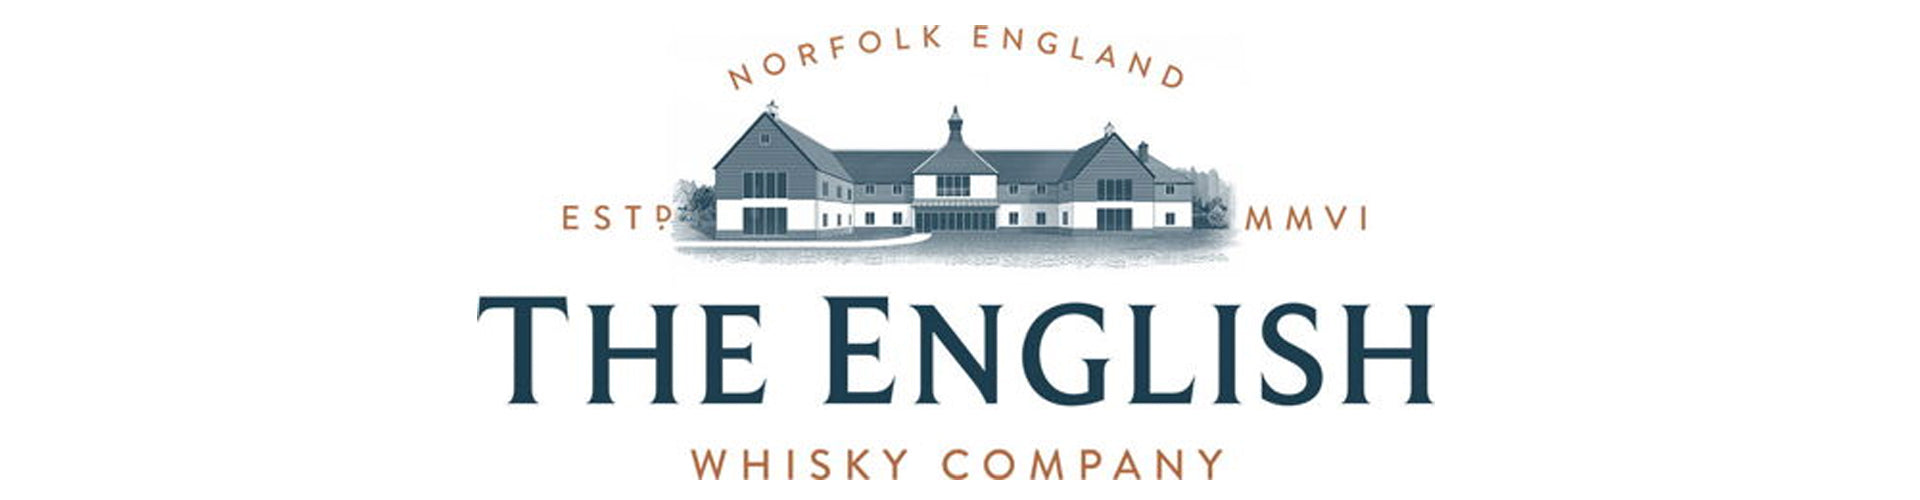 The English Whisky Company Logo Banner